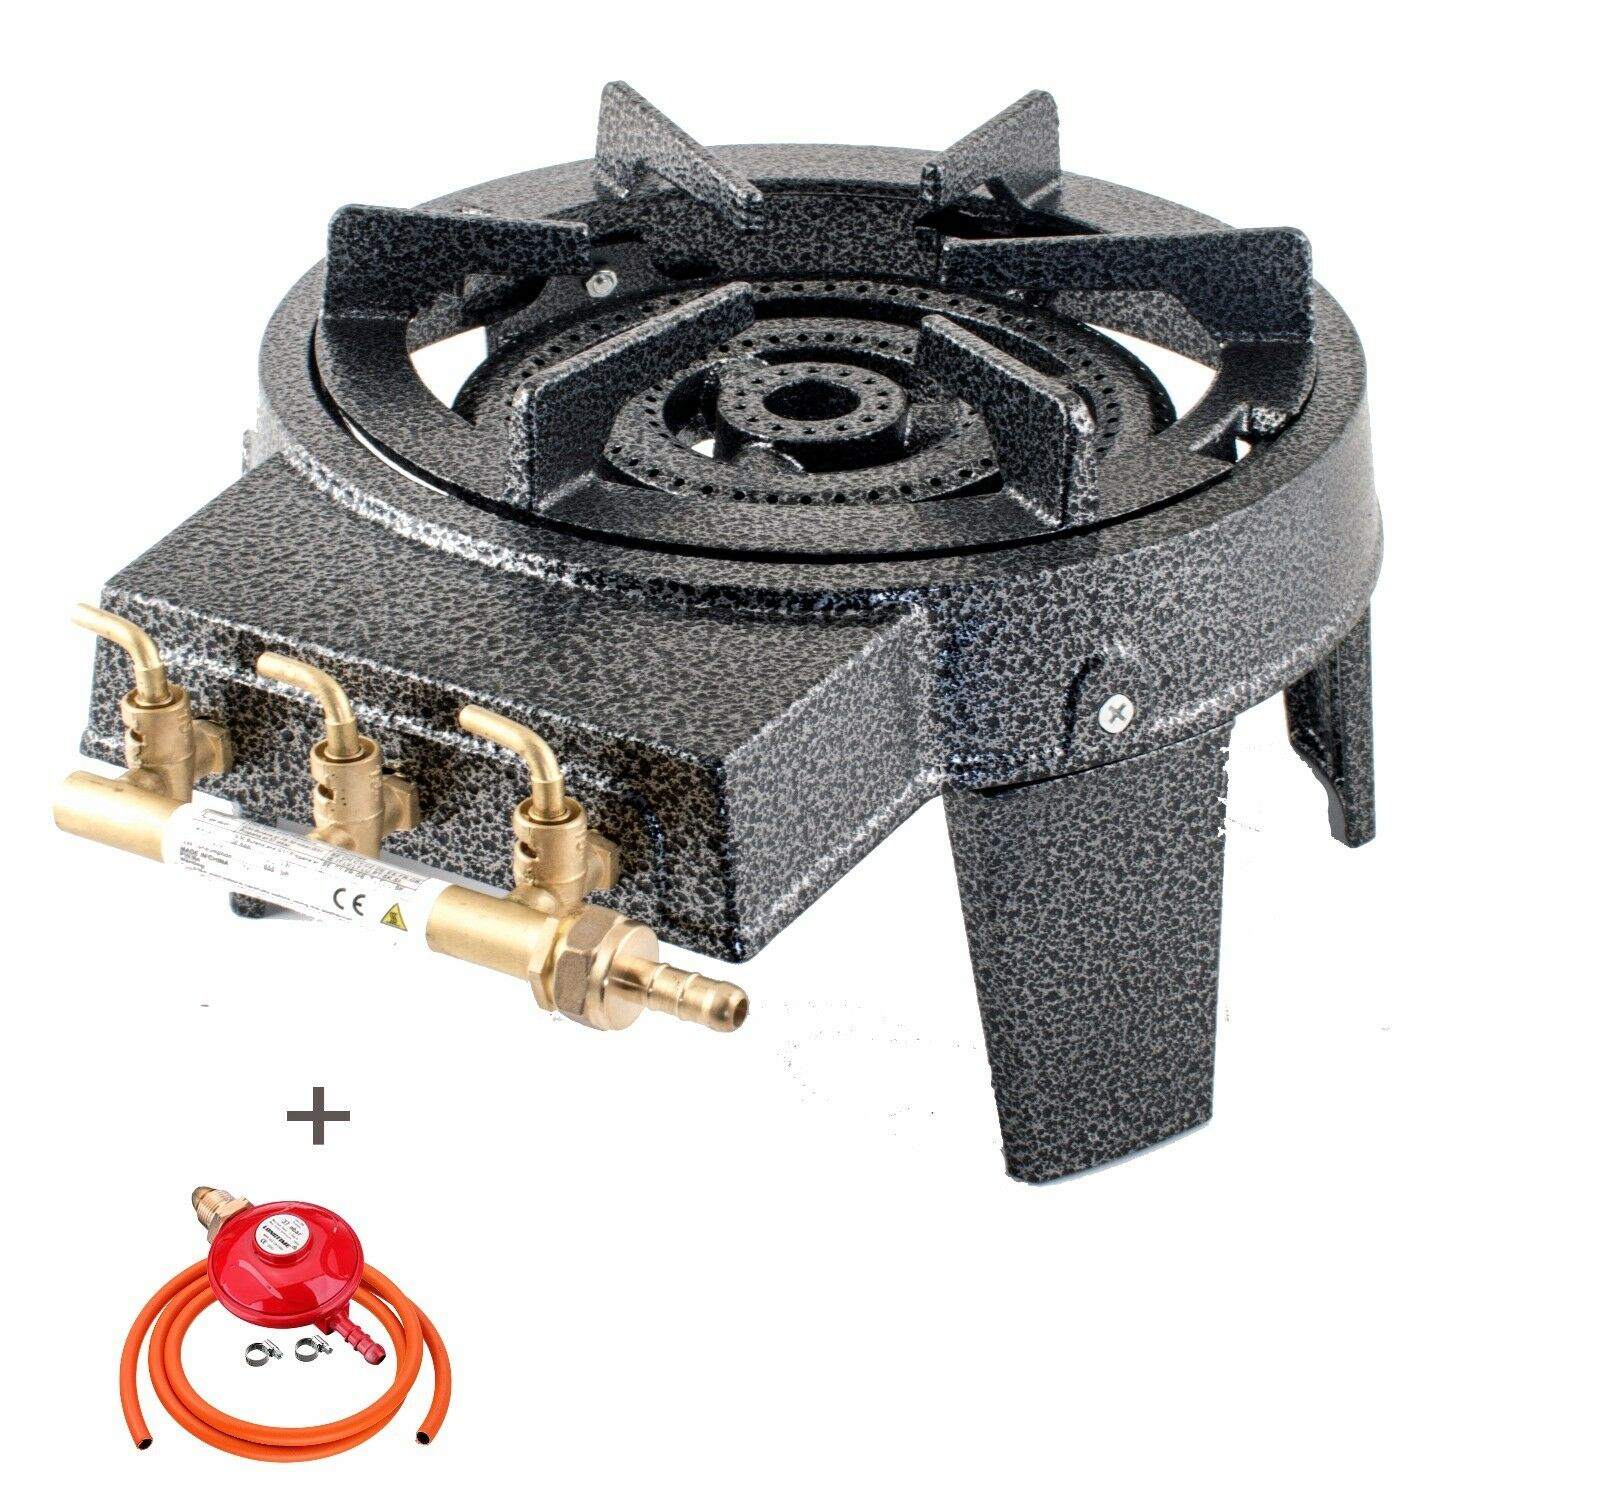 NJ GB-17 Cast Iron Gas Gas Gas Stove Burner Large Boiling Ring 9kW BBQ Camping Catering 53974b